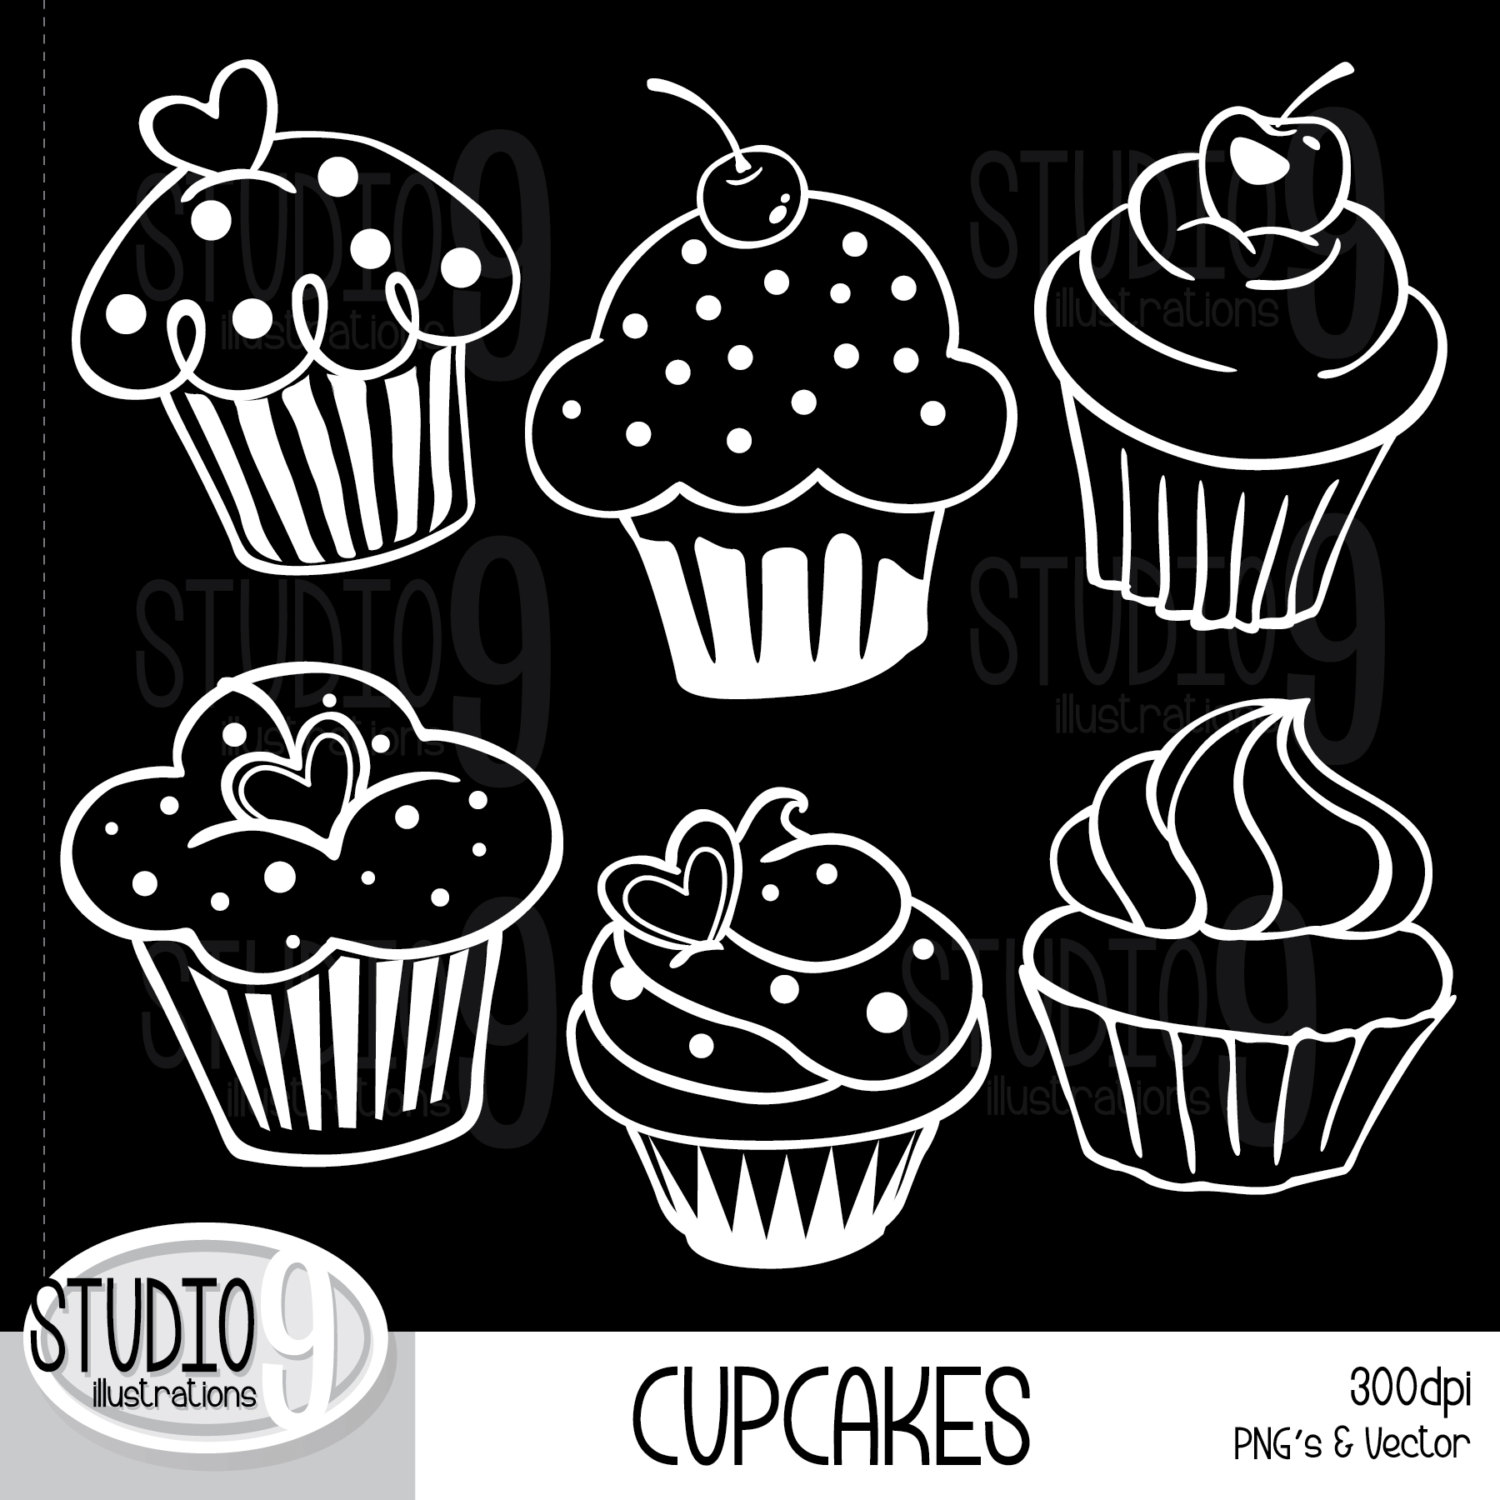 jpg royalty free library Free cake cliparts download. Muffins clipart chalkboard.